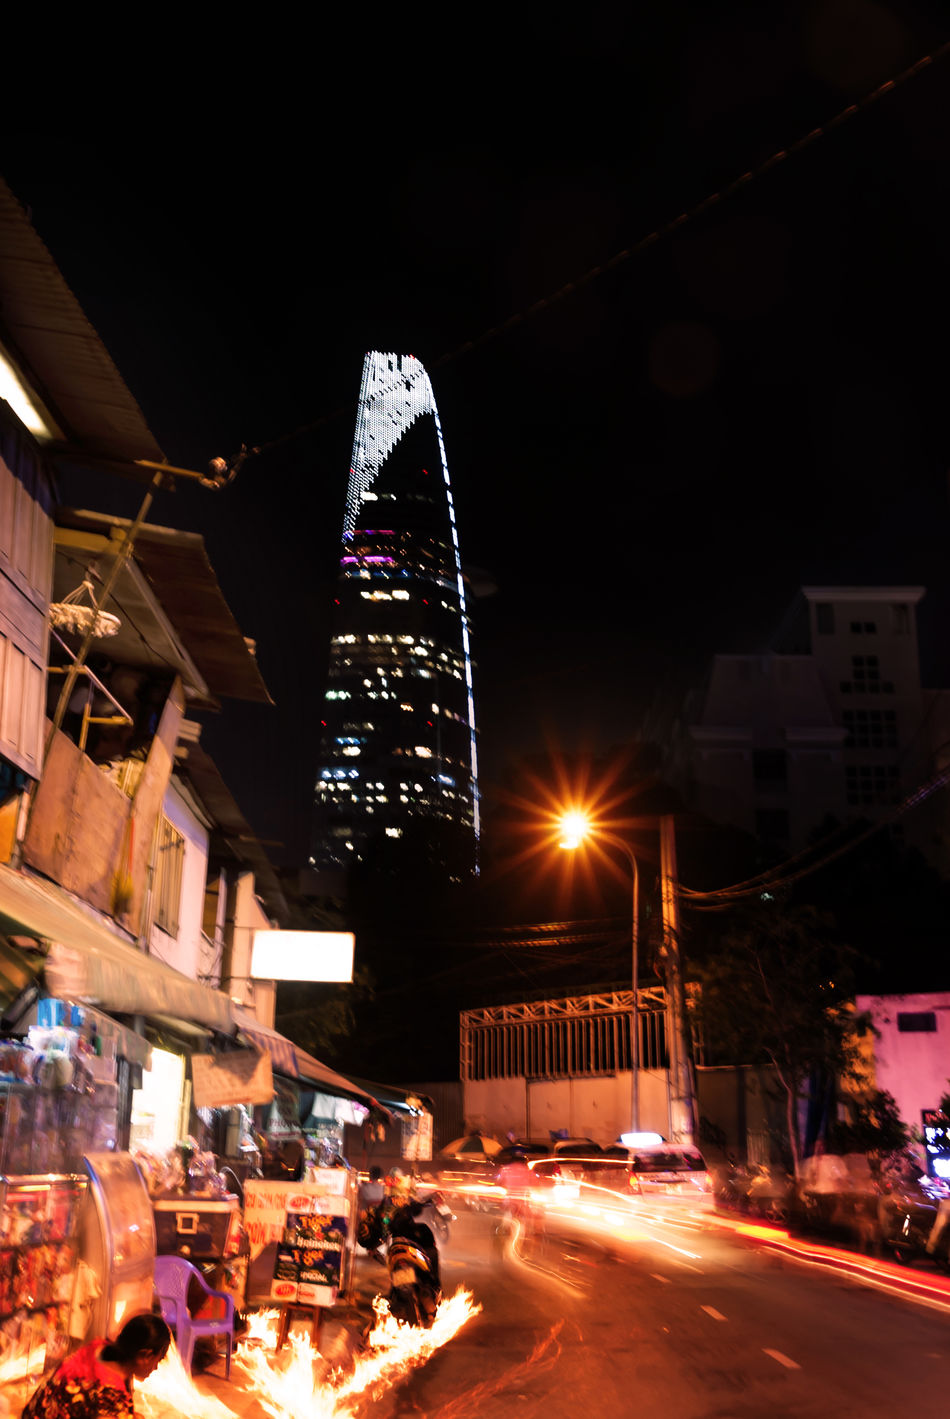 Architecture Bitexco Bitexcofinancialtower Built Structure City City Life City Street Contrast Illuminated Modern Night No People Opposite Outdoors Sky Streetphotography Travel Destinations Vietnam